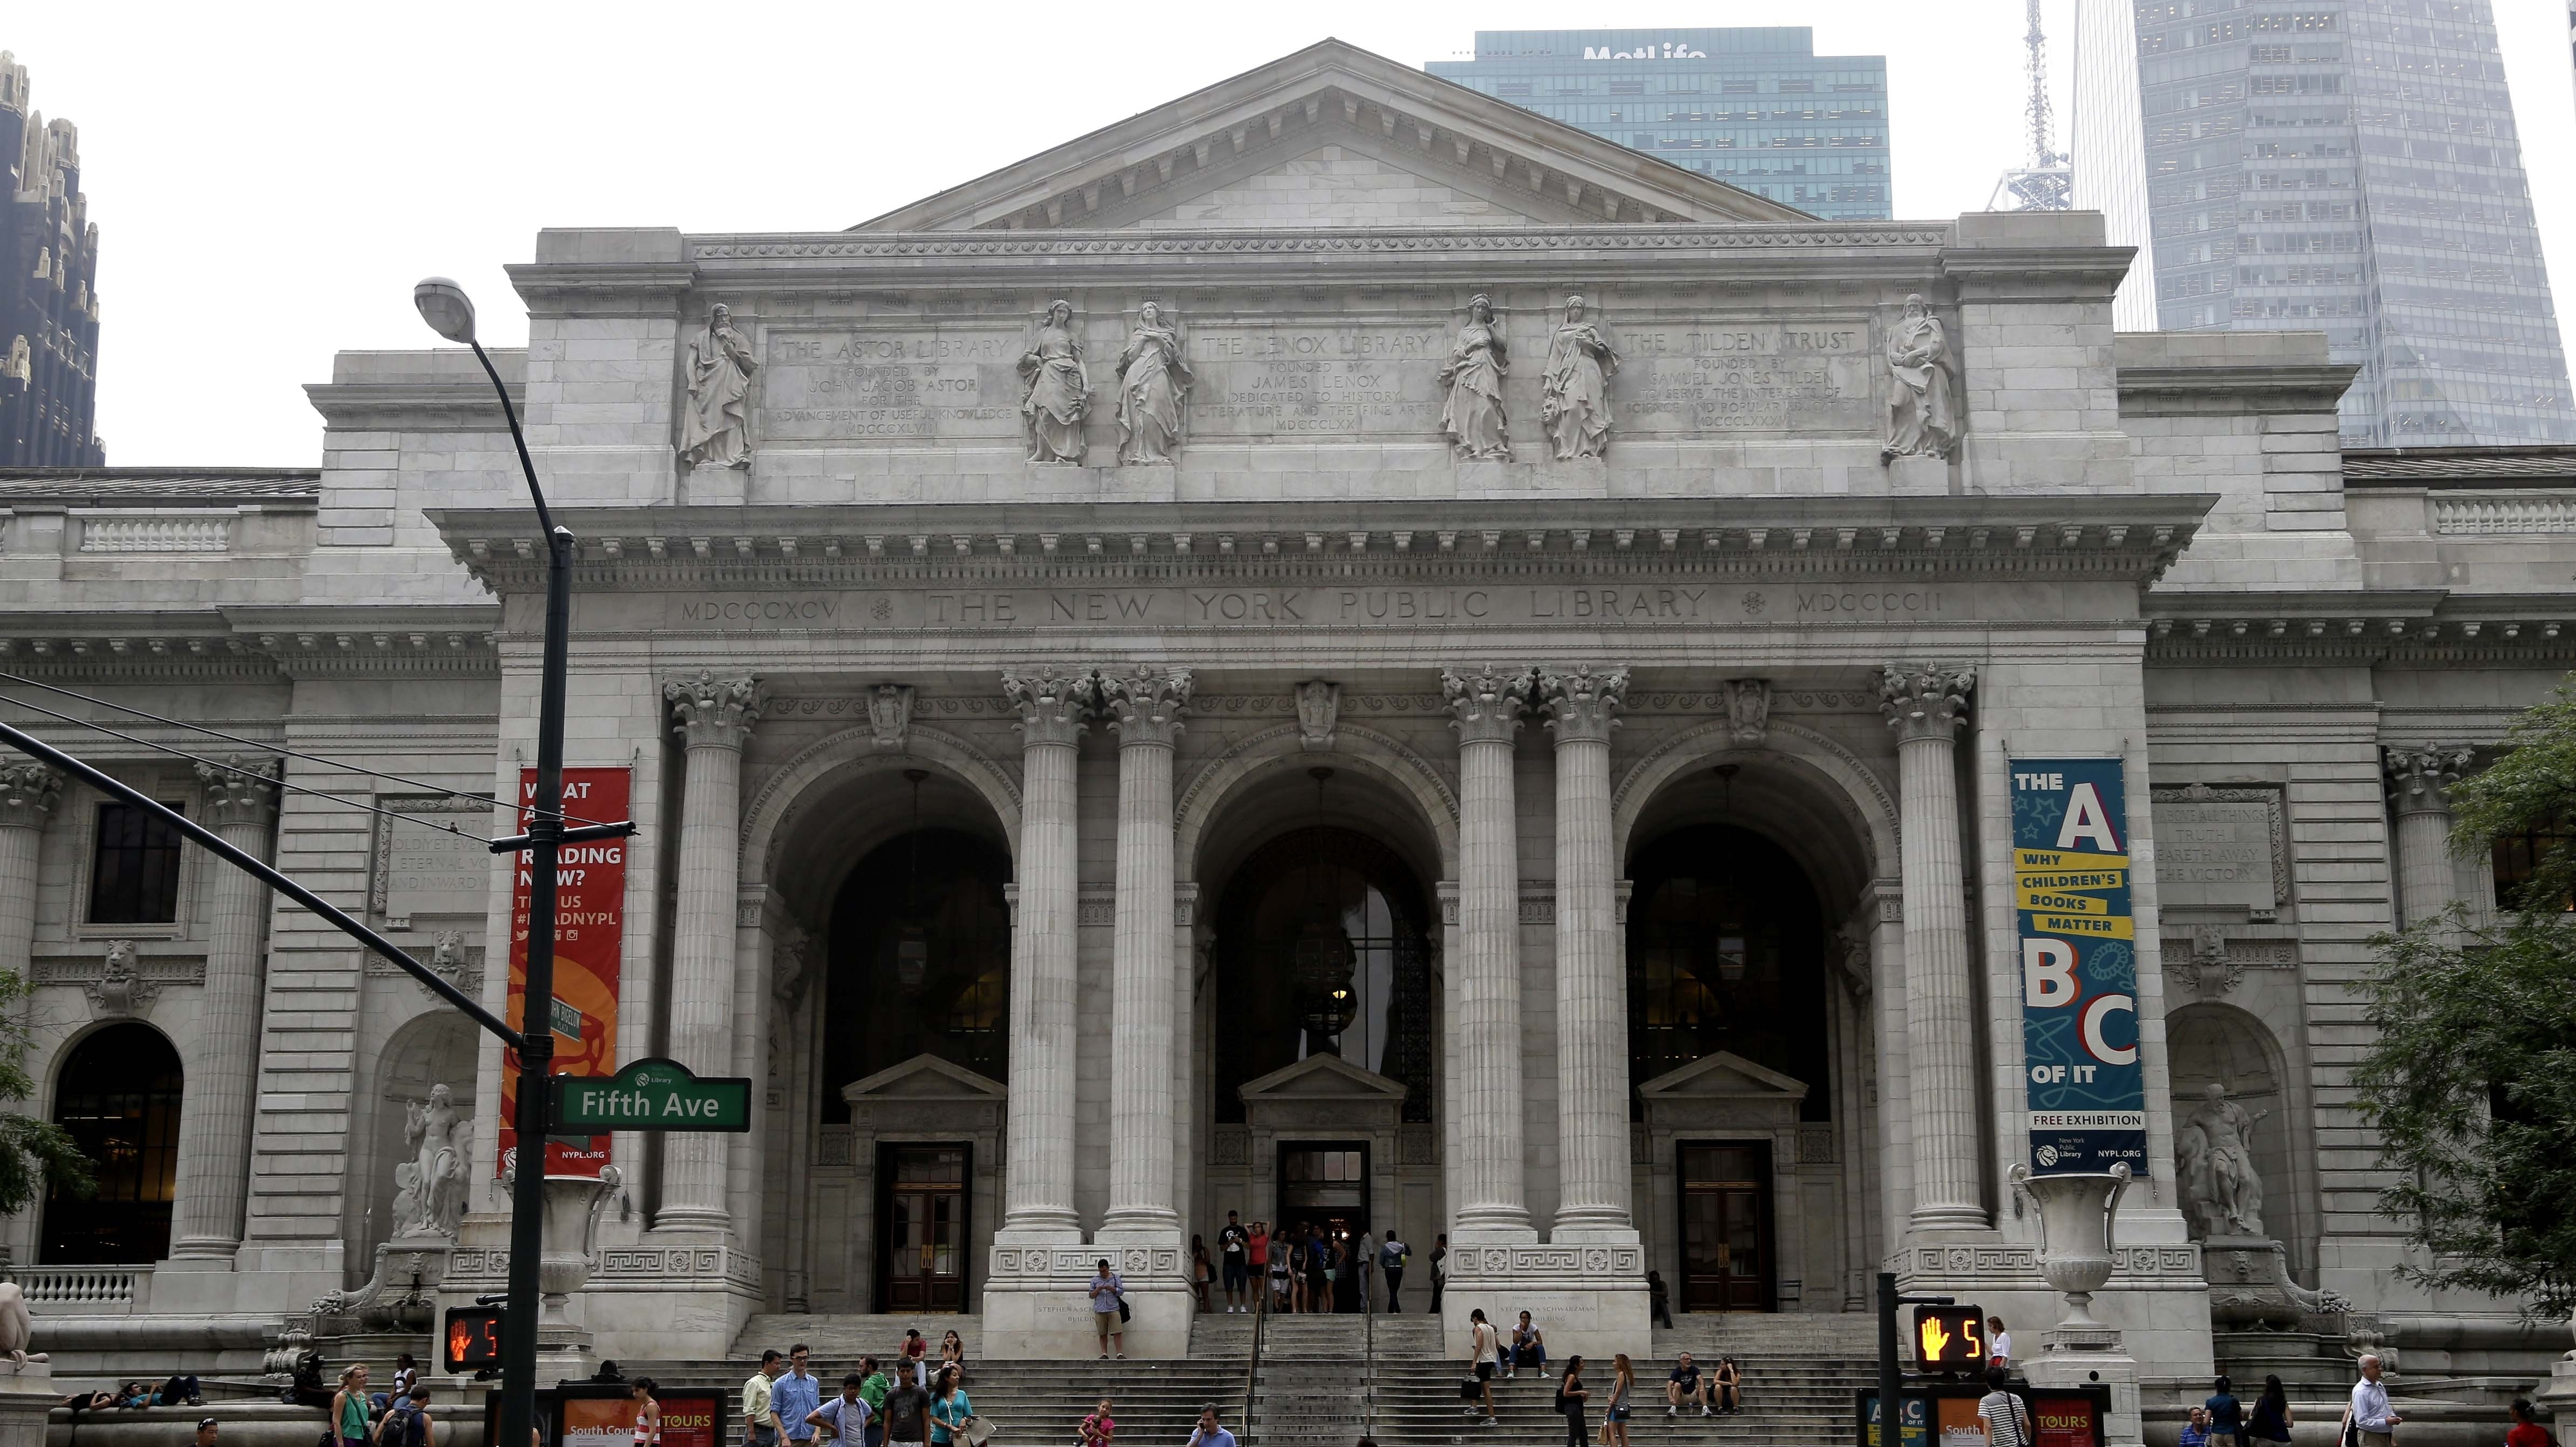 Book News: Happiness Study Says Library Trips Are As Good As A Pay Raise